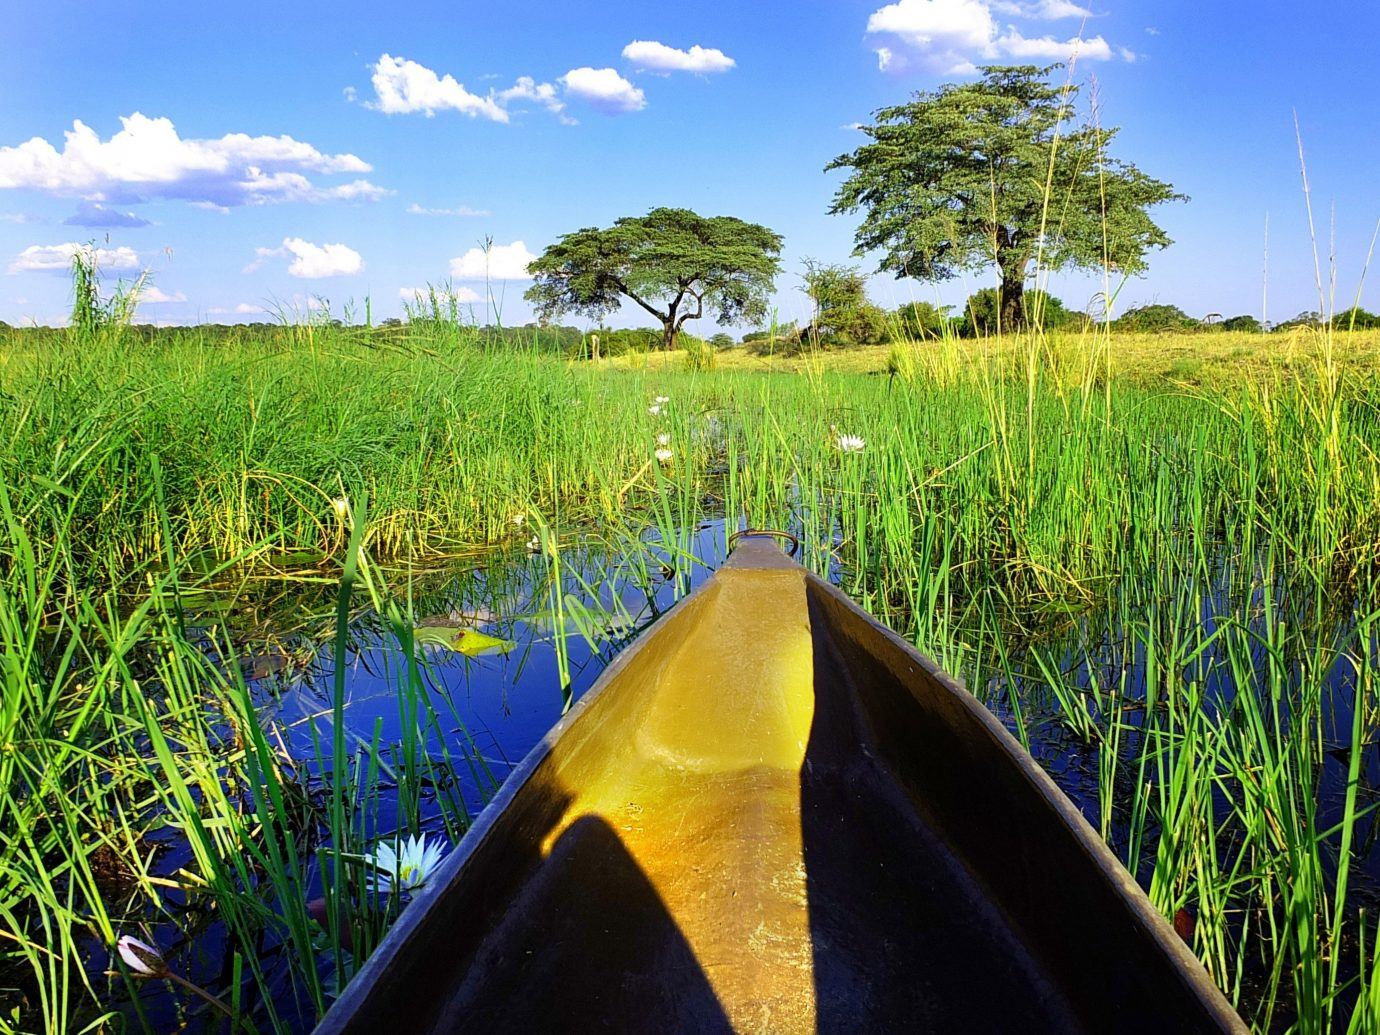 Health + Wellness Trip Ideas sky grass outdoor habitat Nature geographical feature green natural environment ecosystem field agriculture paddy field wetland rural area meadow yellow grass family crop flower sunlight outdoor object